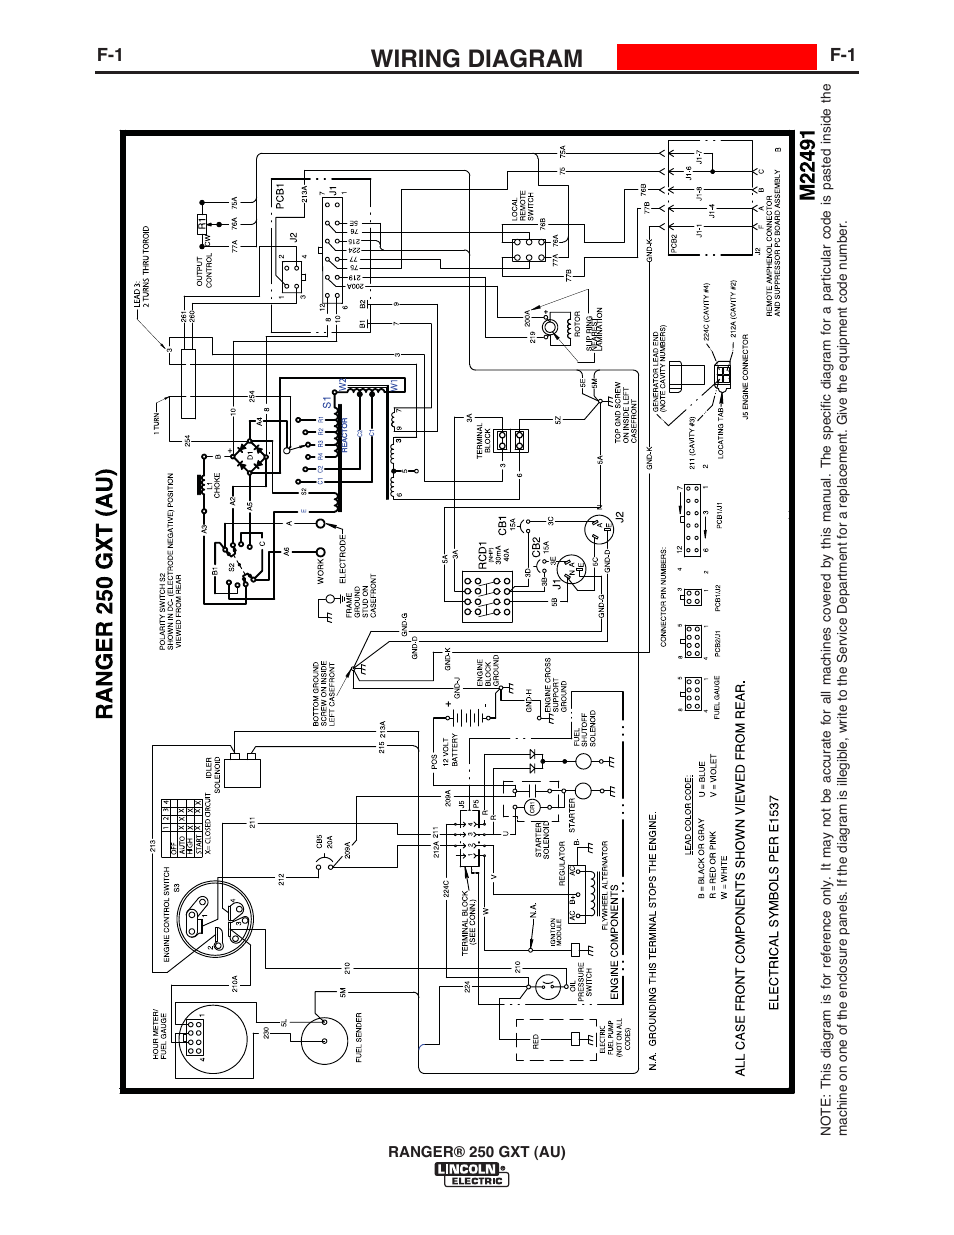 Miller Bluestar Wiring Diagram. Miller Welders Engine